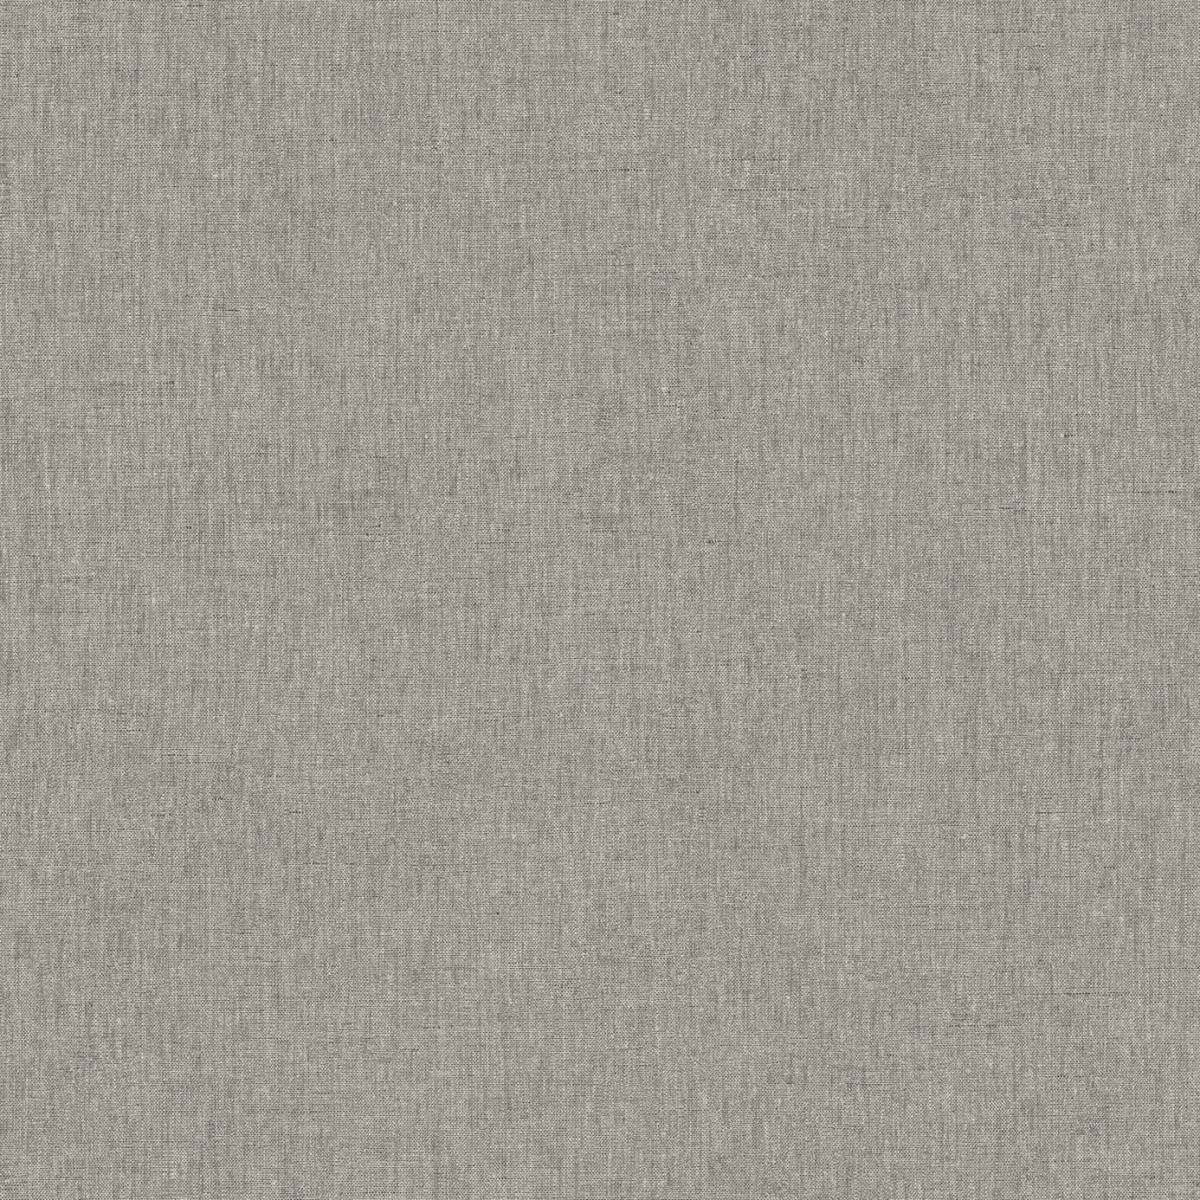 Linen Wallpaper 68529432 Caselio Linen Wallpapers